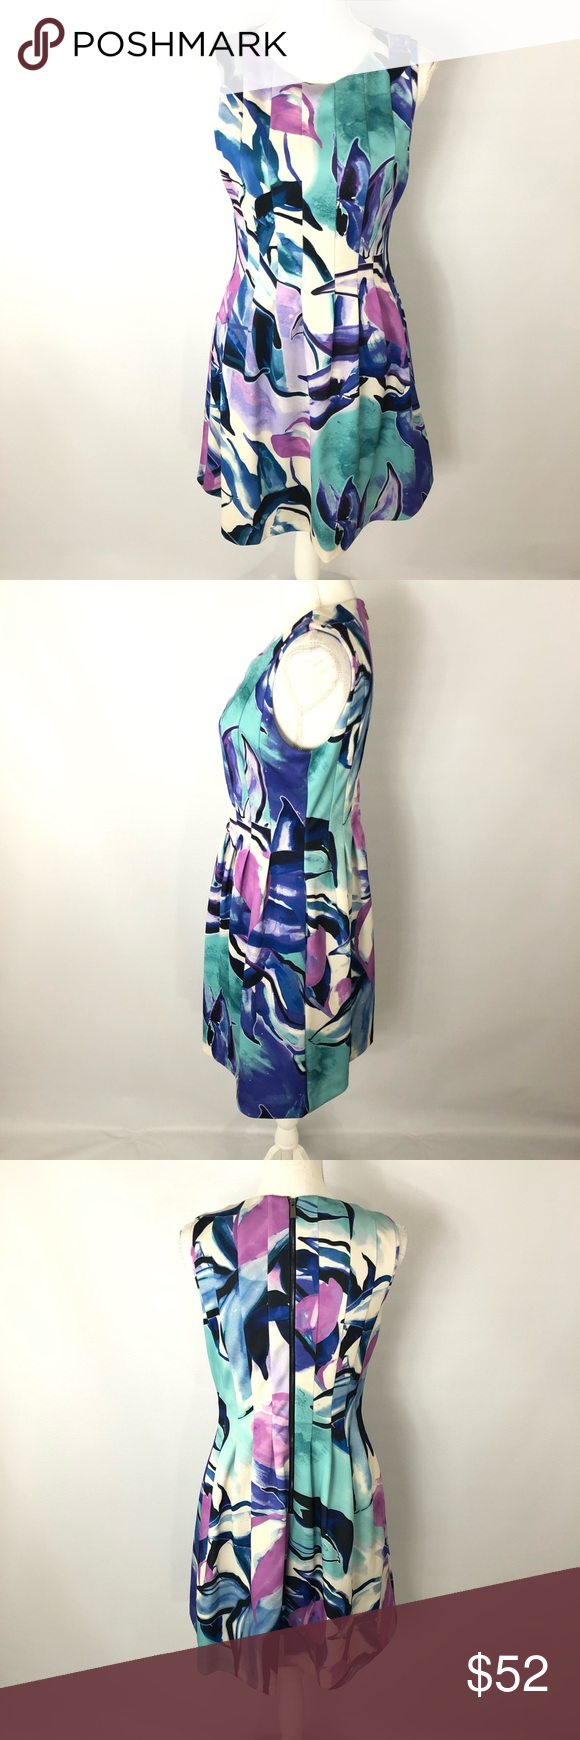 9cad6d63985fd Colorful, pleating, light material. EUC. Measurements are flat lay. Pit to  Pit 17 Waist 15 Length 35 1/2 07-1118-105 Vince Camuto Dresses